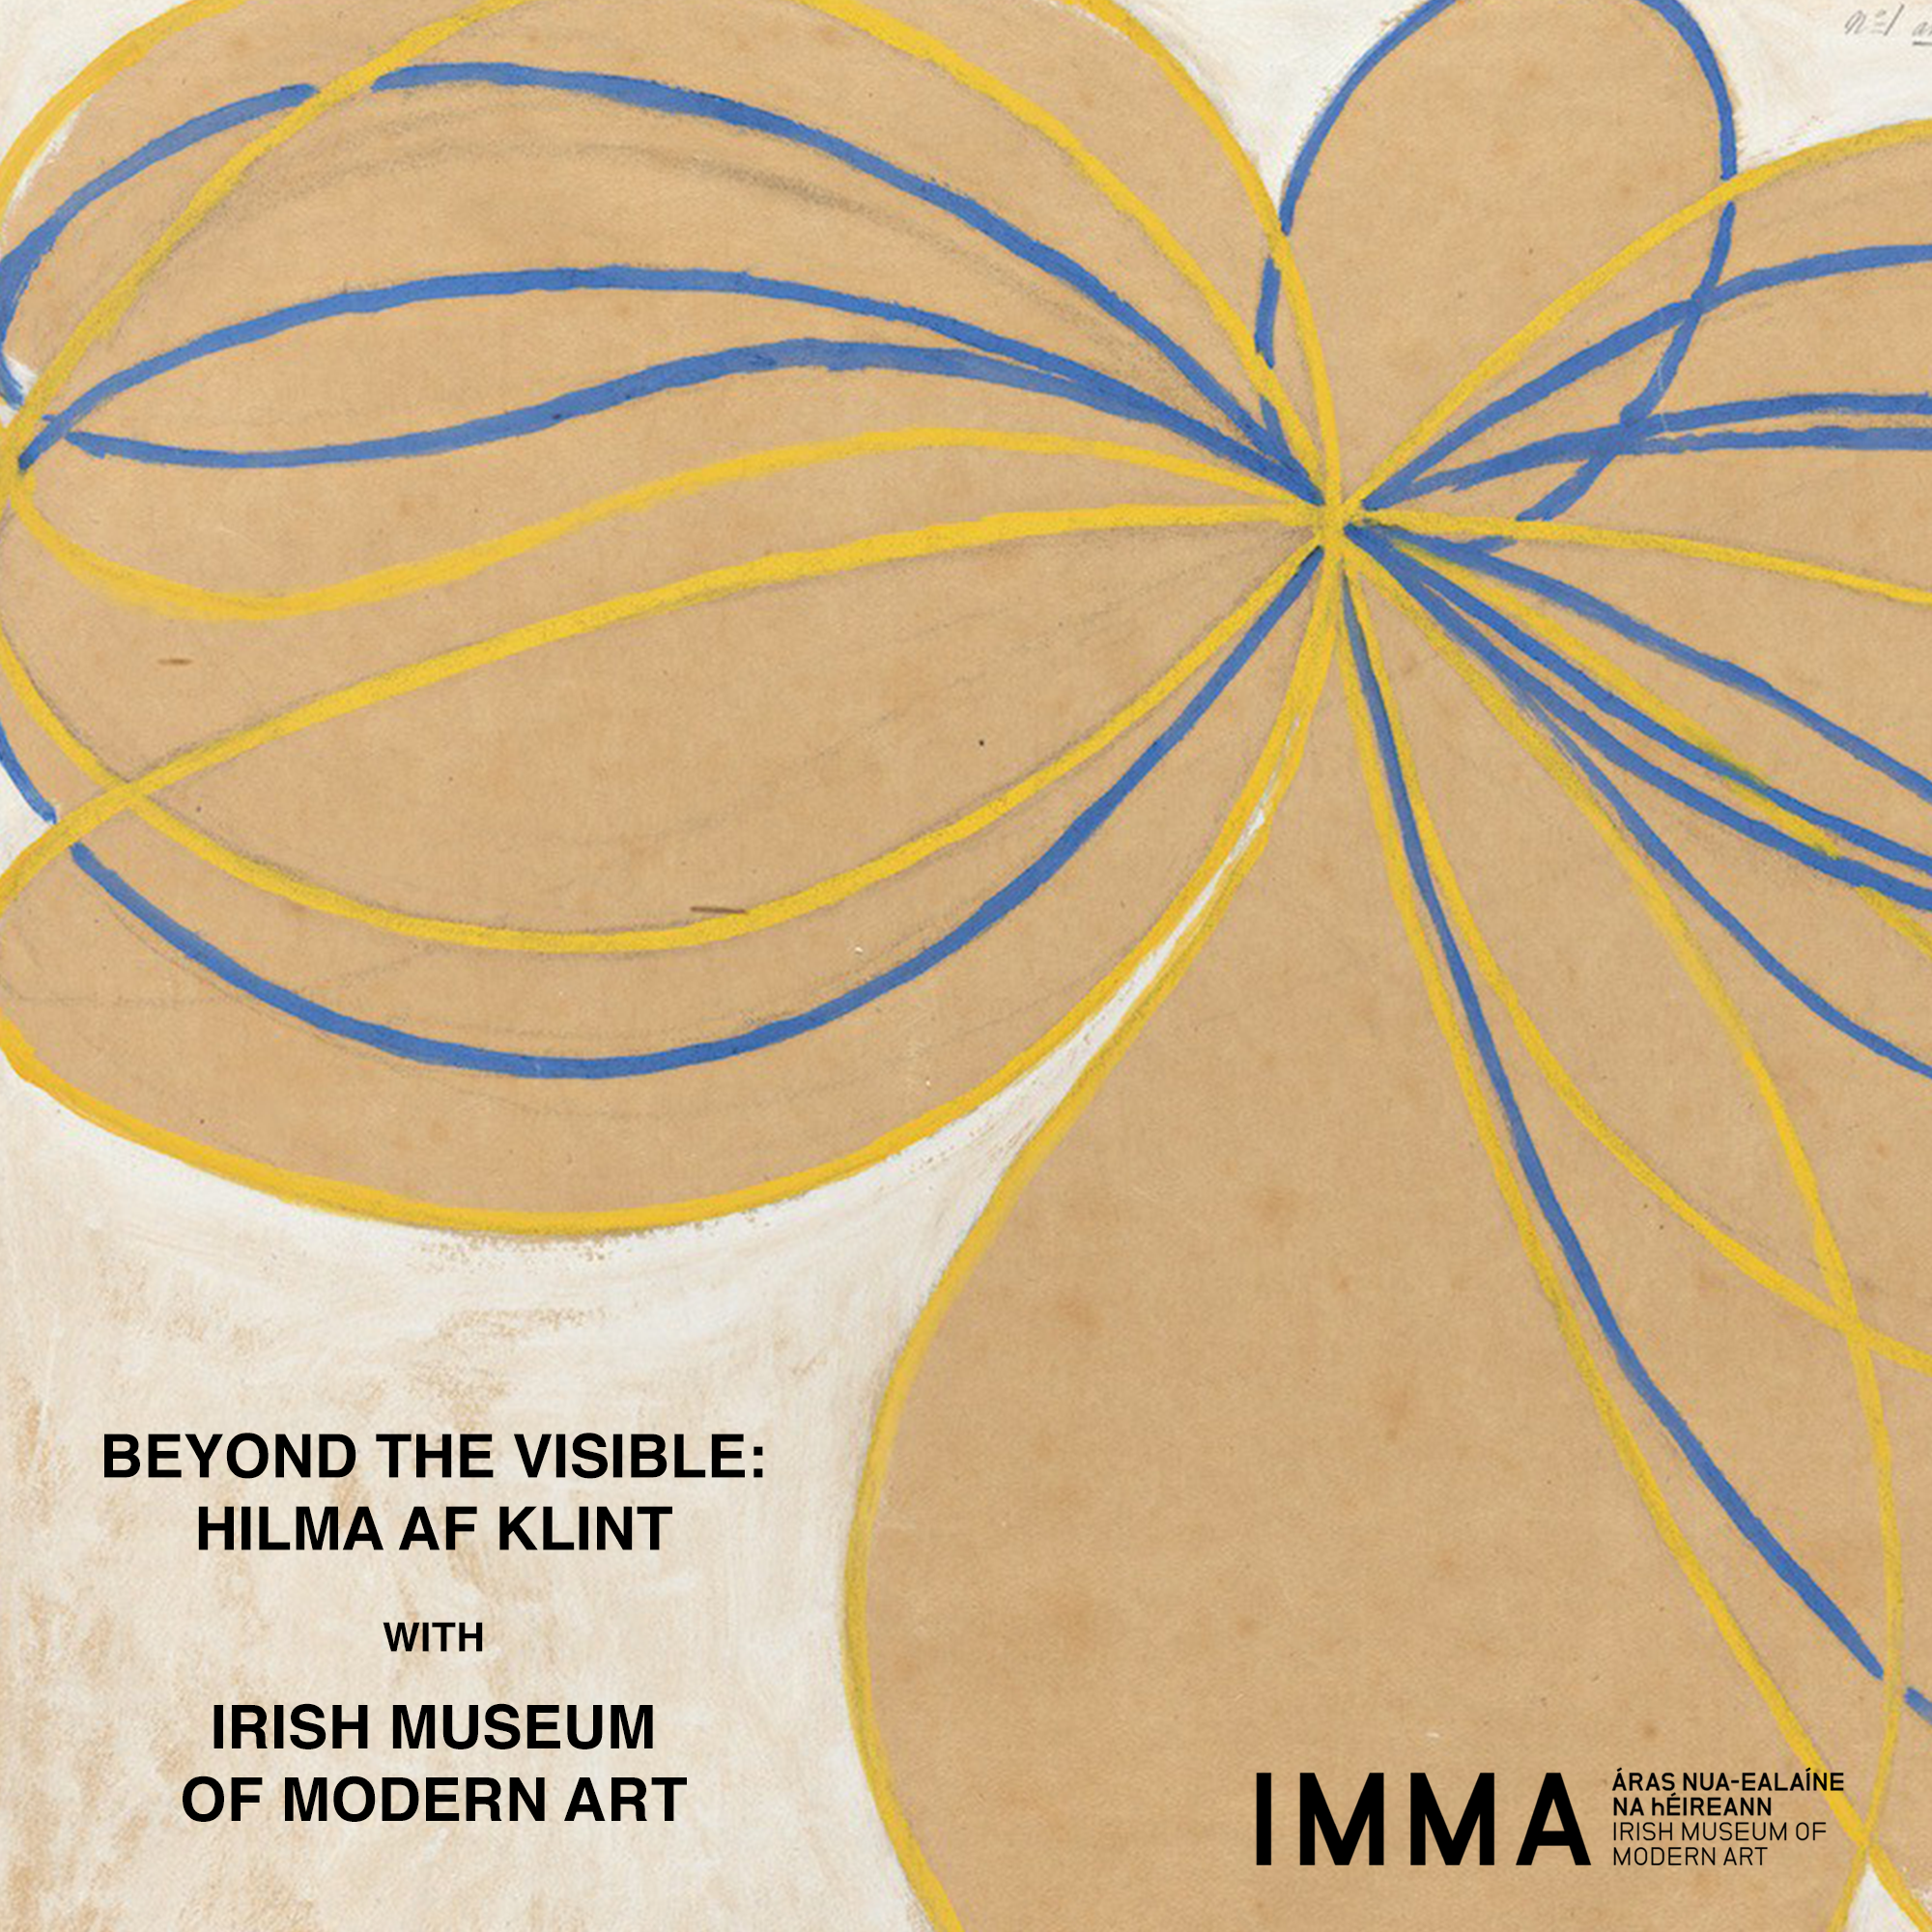 Beyond the Visible: Hilma af Klint with IMMA- Example Screener